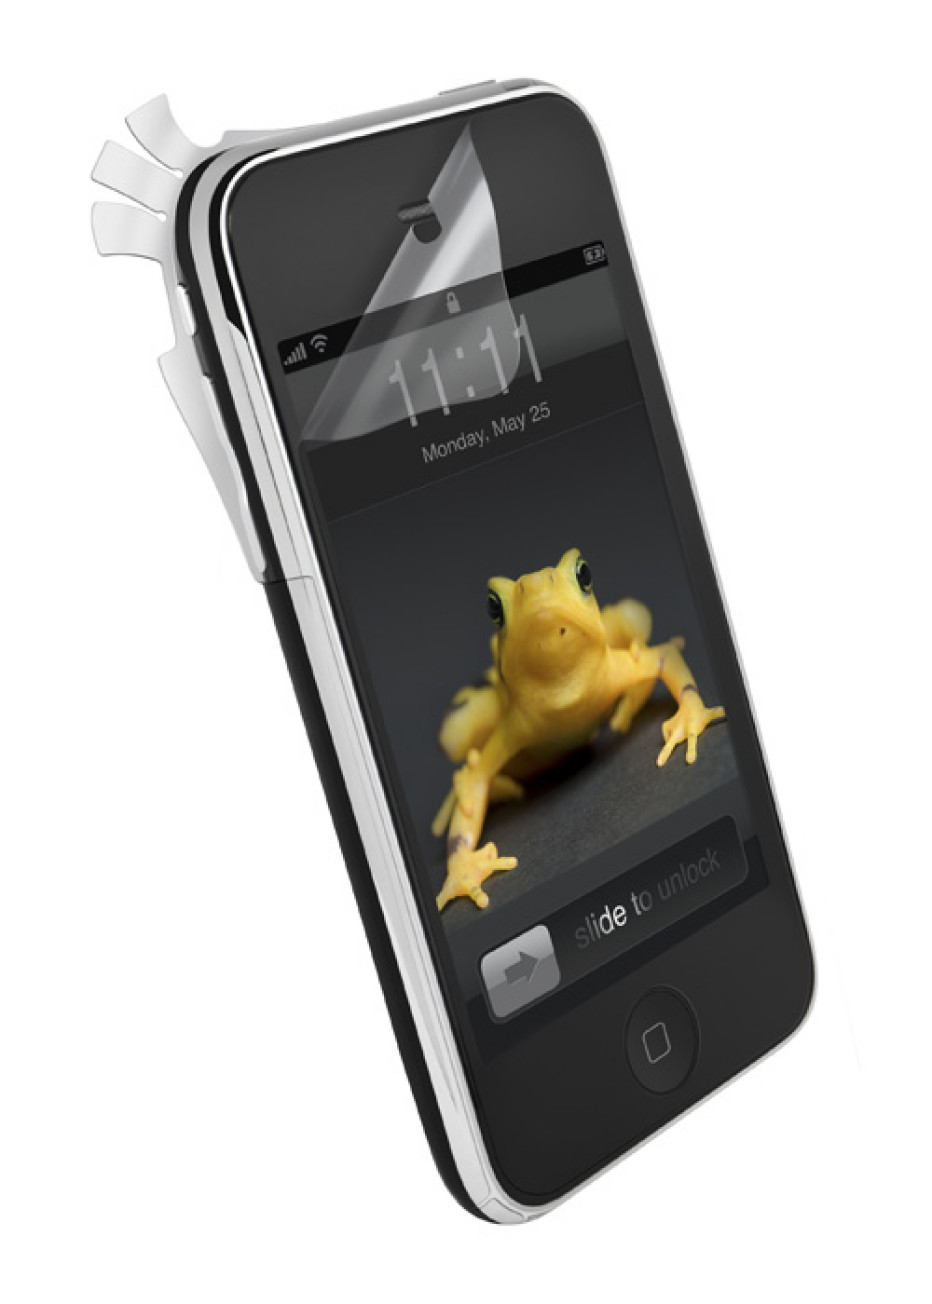 Wrapsol ultra adhesive films for mobile device protection